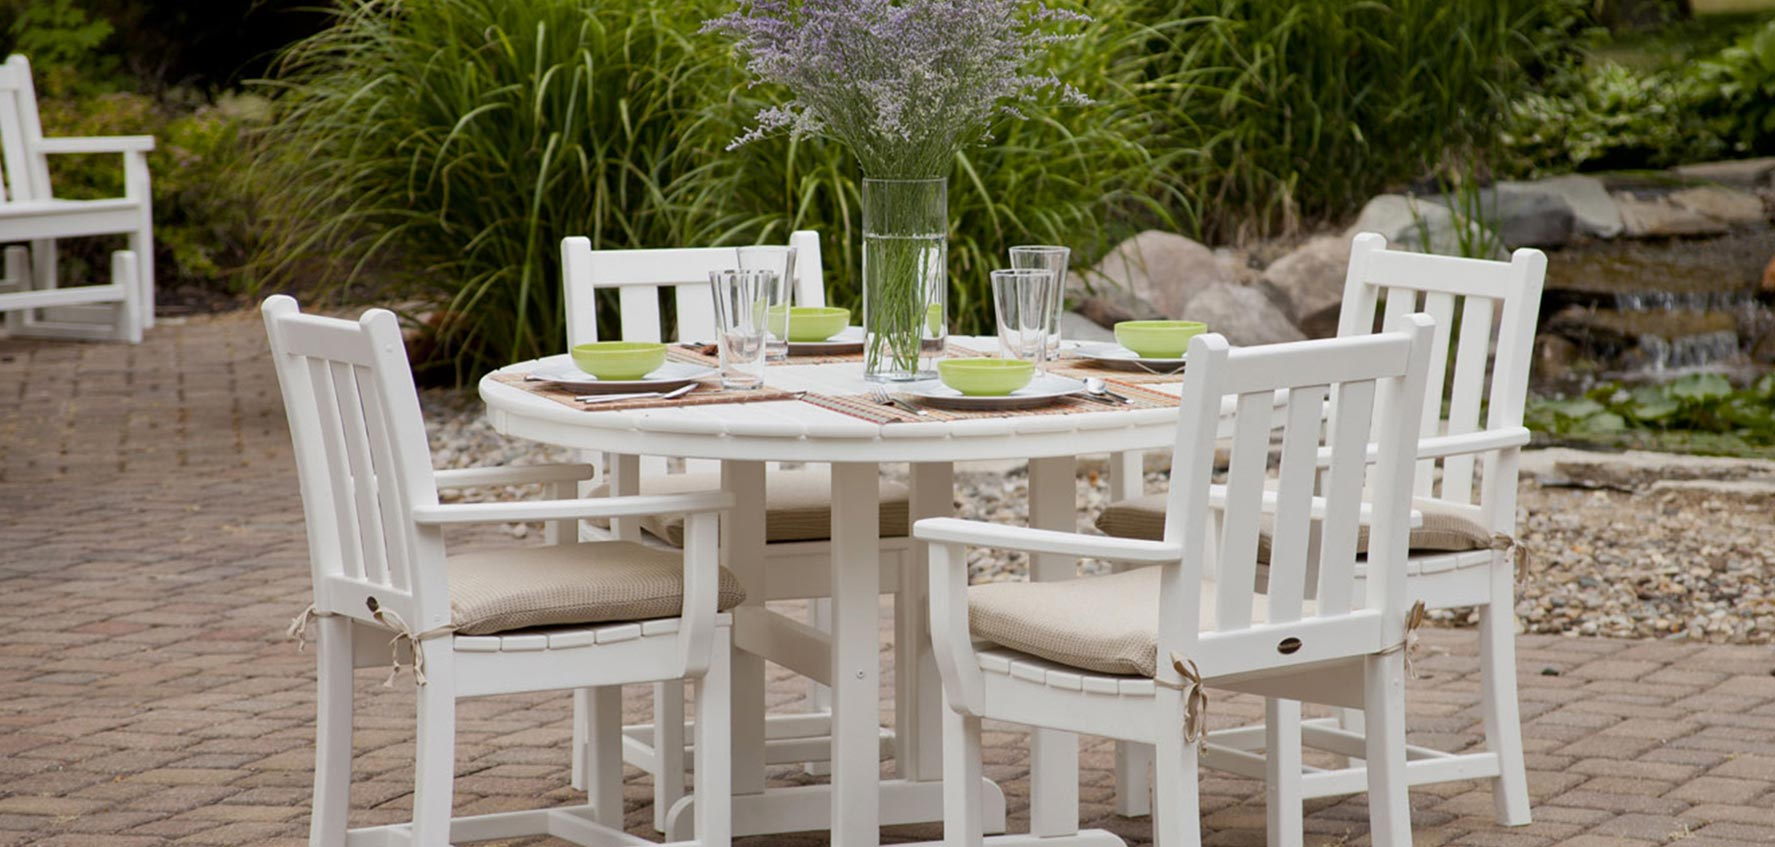 Traditional Garden Furniture By Polywood Vermont Woods